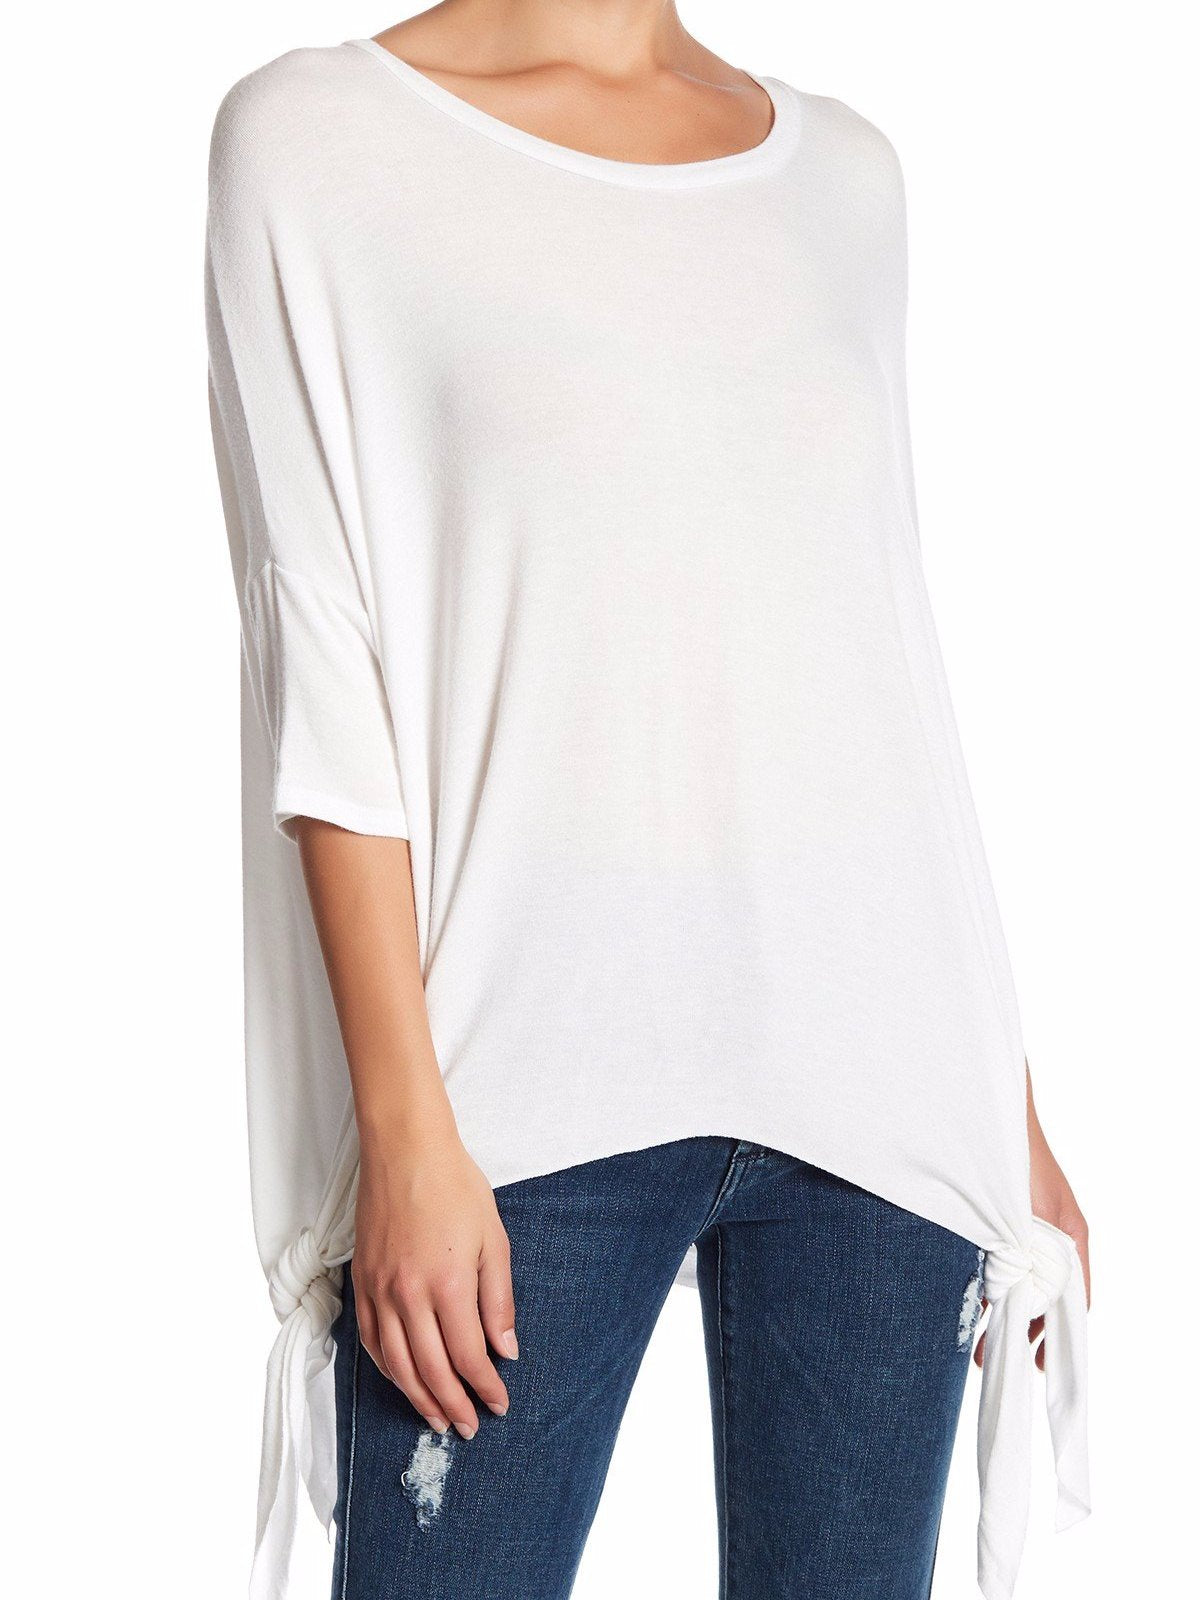 White Asymmetrical TOP - Plammie Activewear